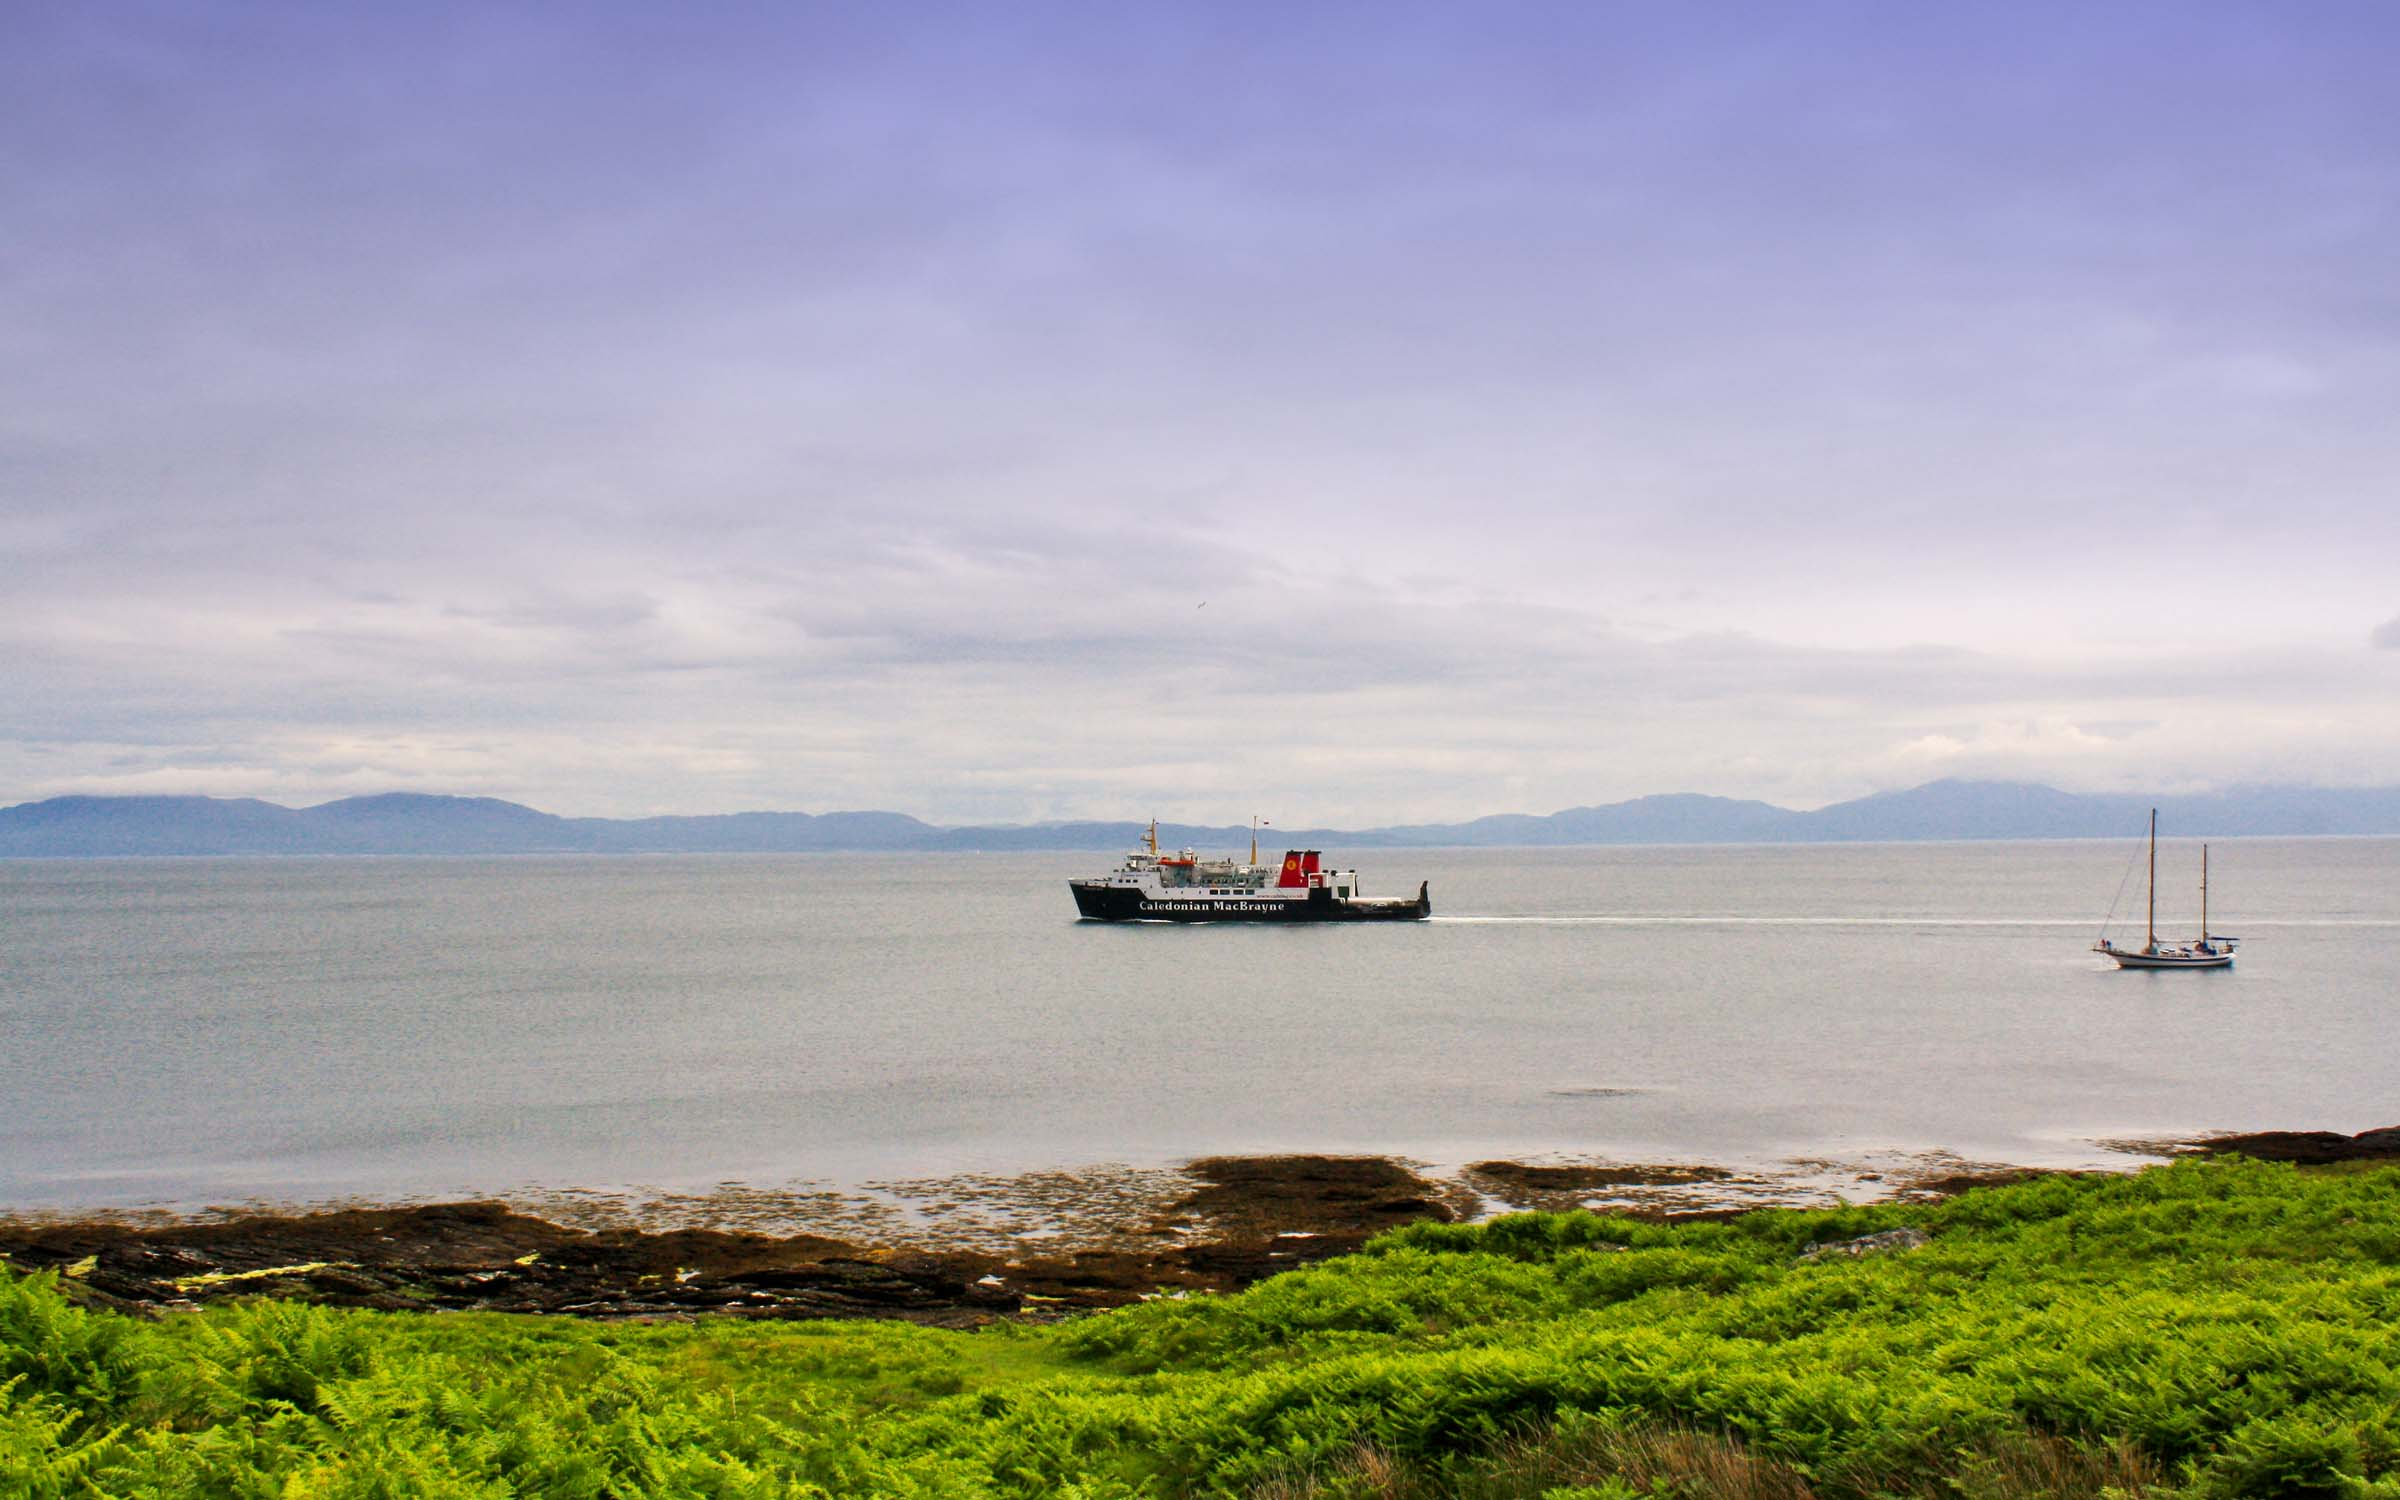 Hebridean Isles leaving Colonsay bound for Oban (Ships of CalMac)